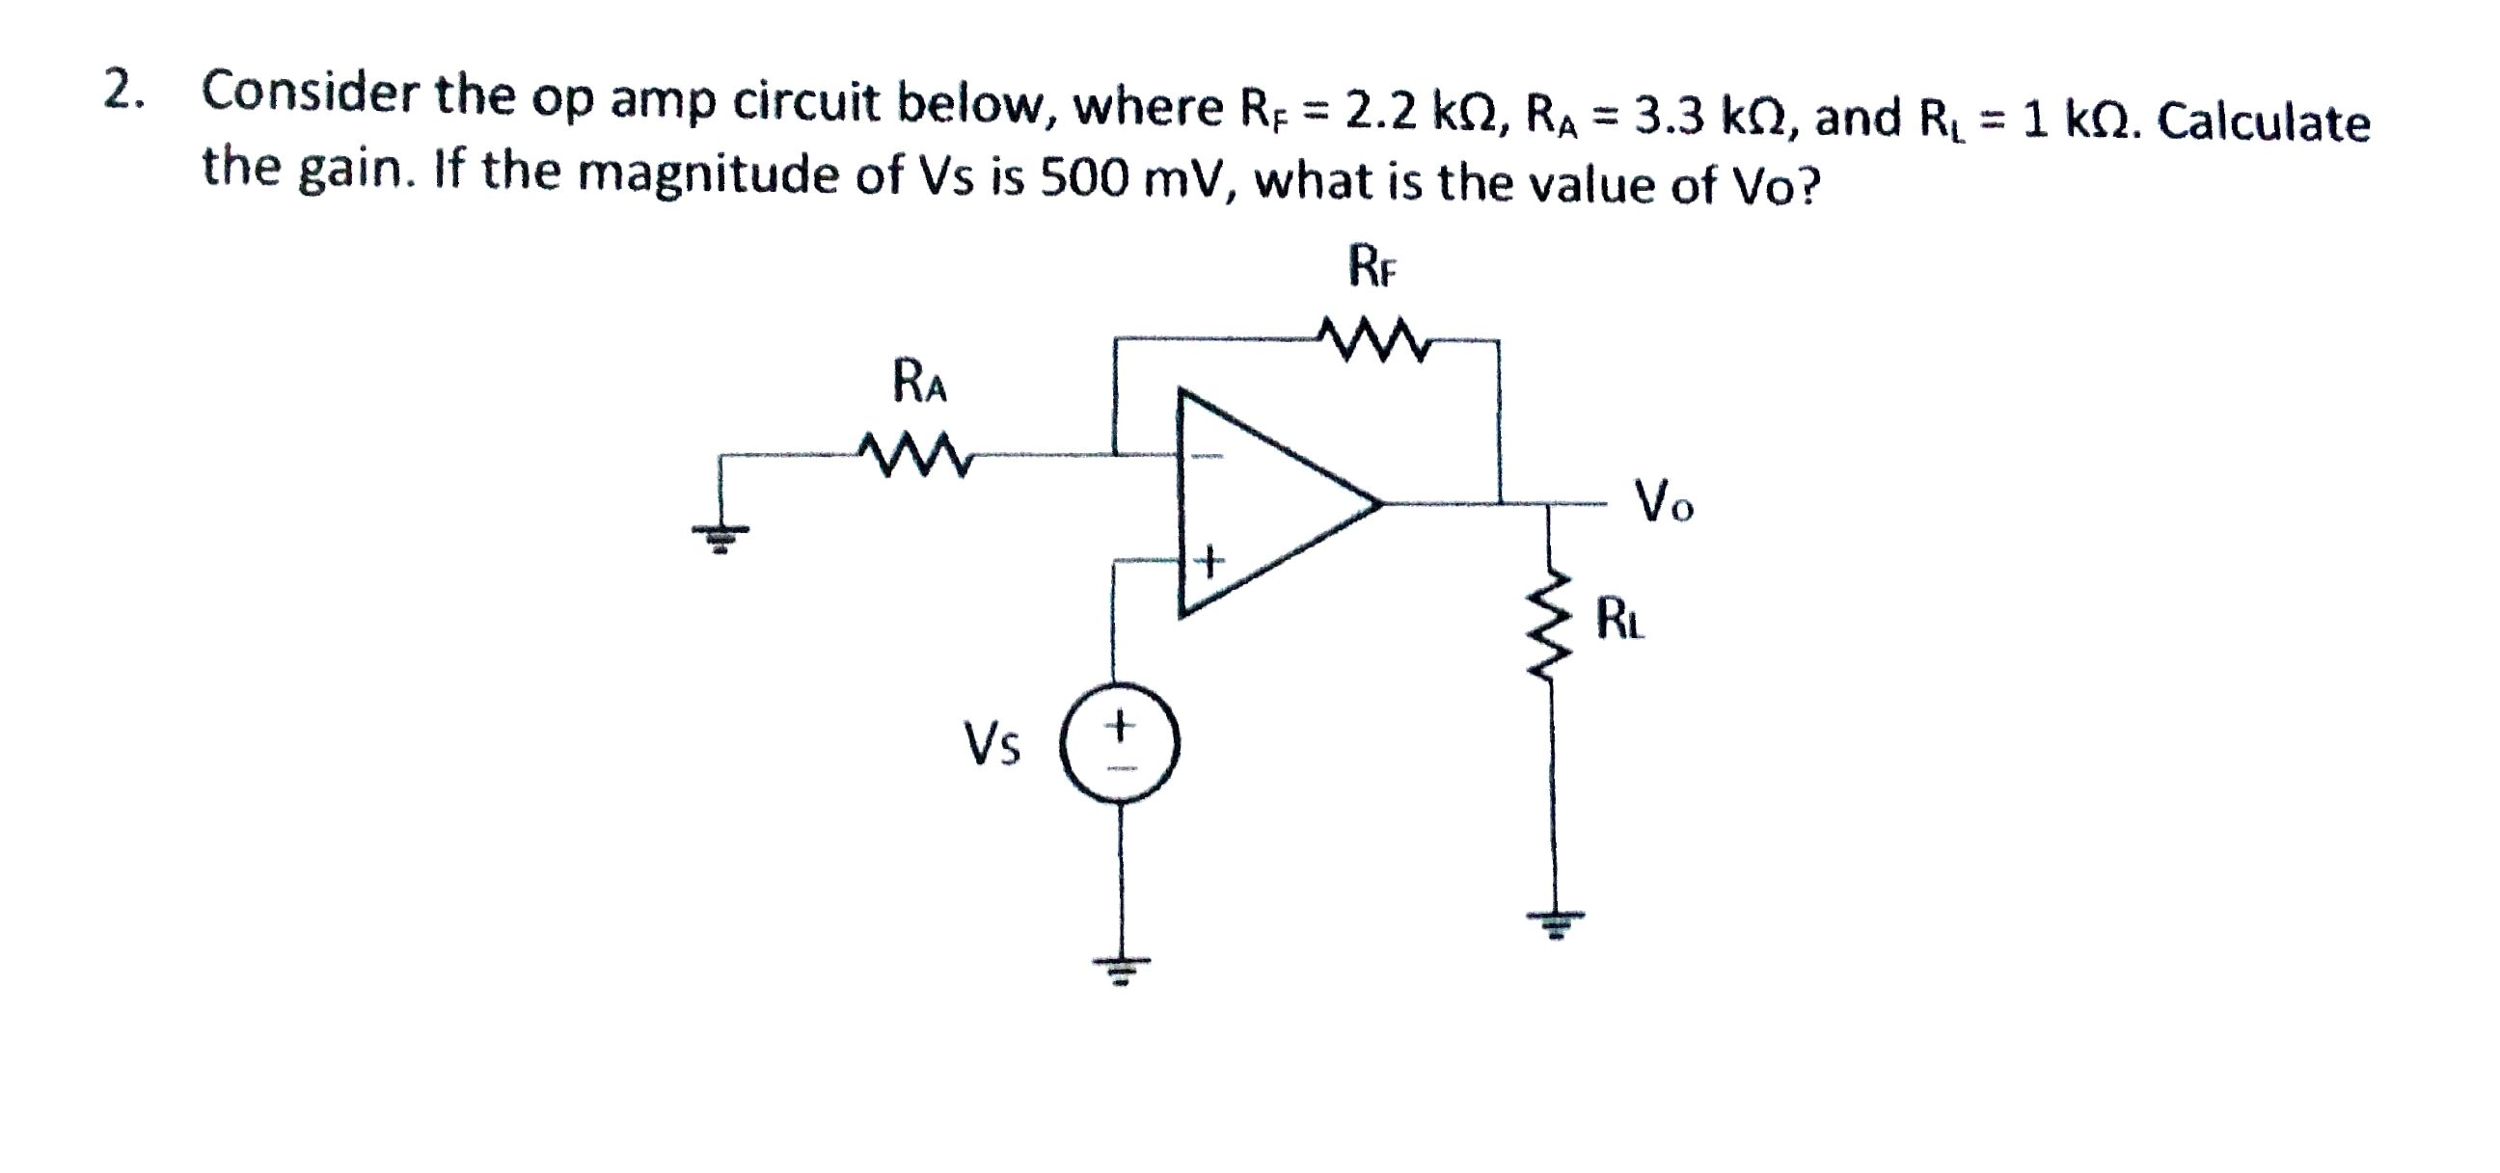 Consider the op amp circuit below, where RF = 2.2